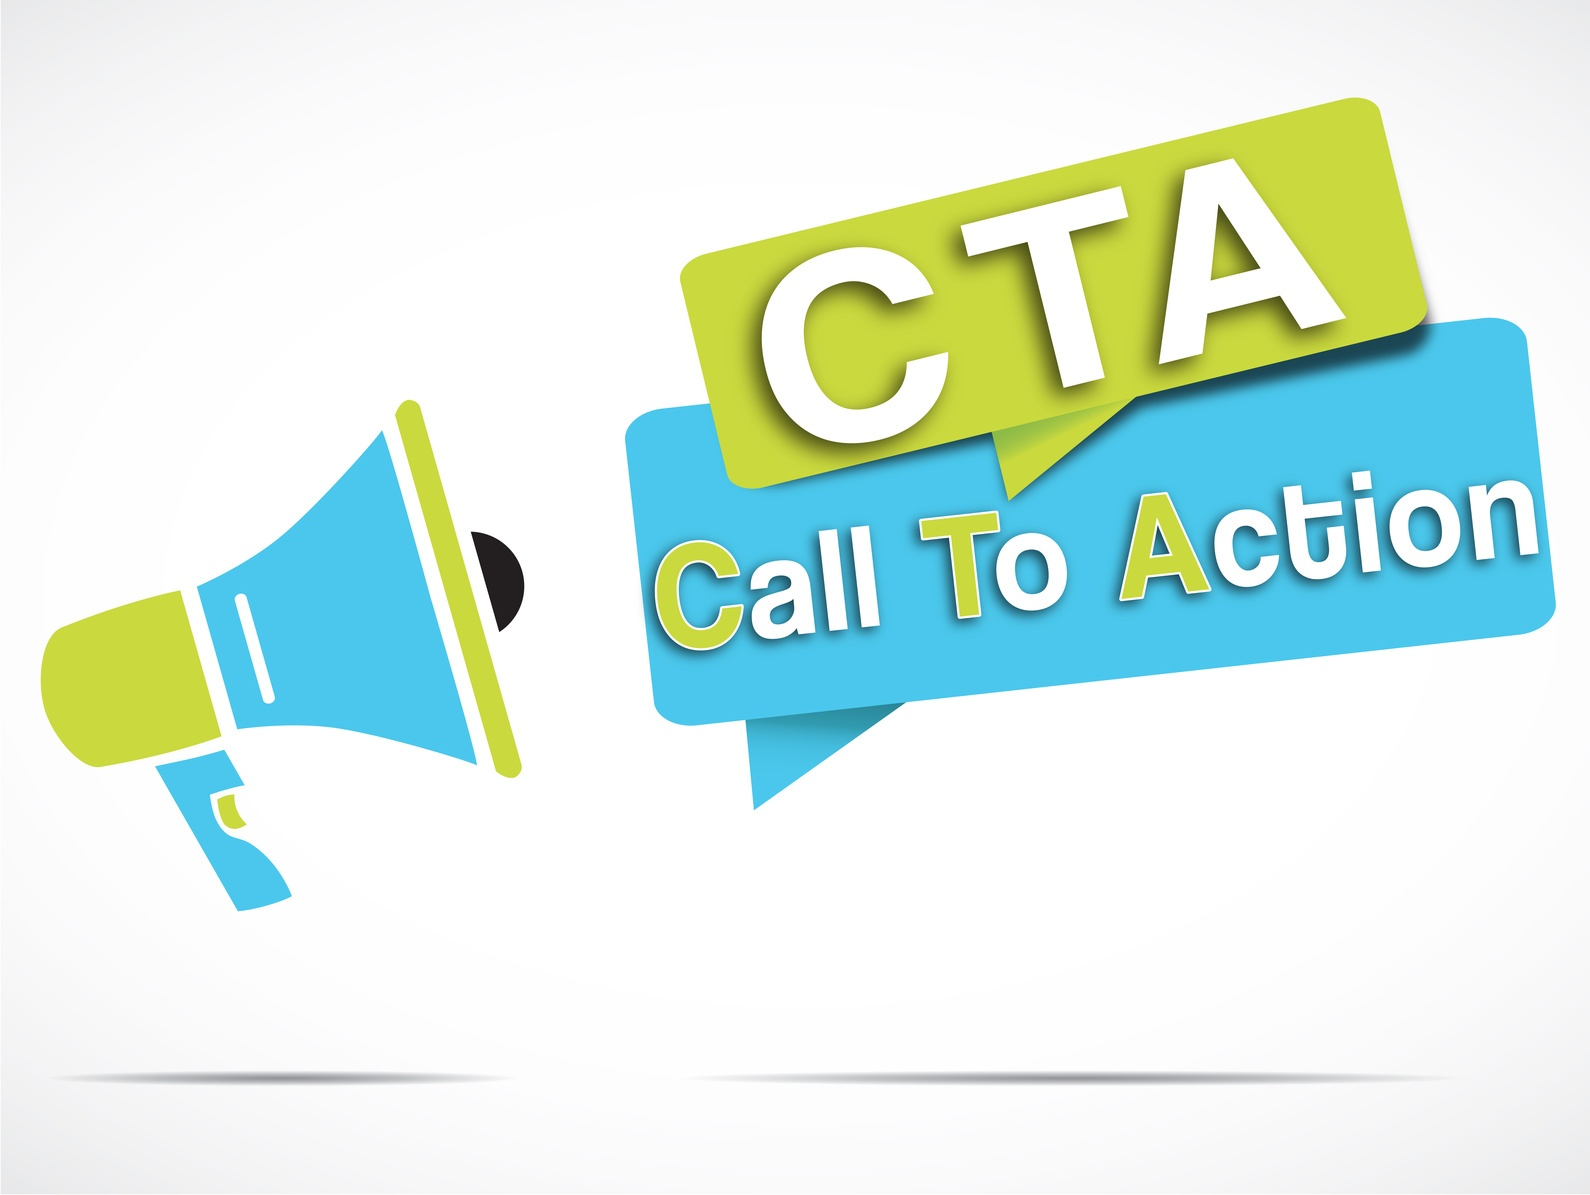 7 Hallmarks of Highly Effective Calls-to-Action